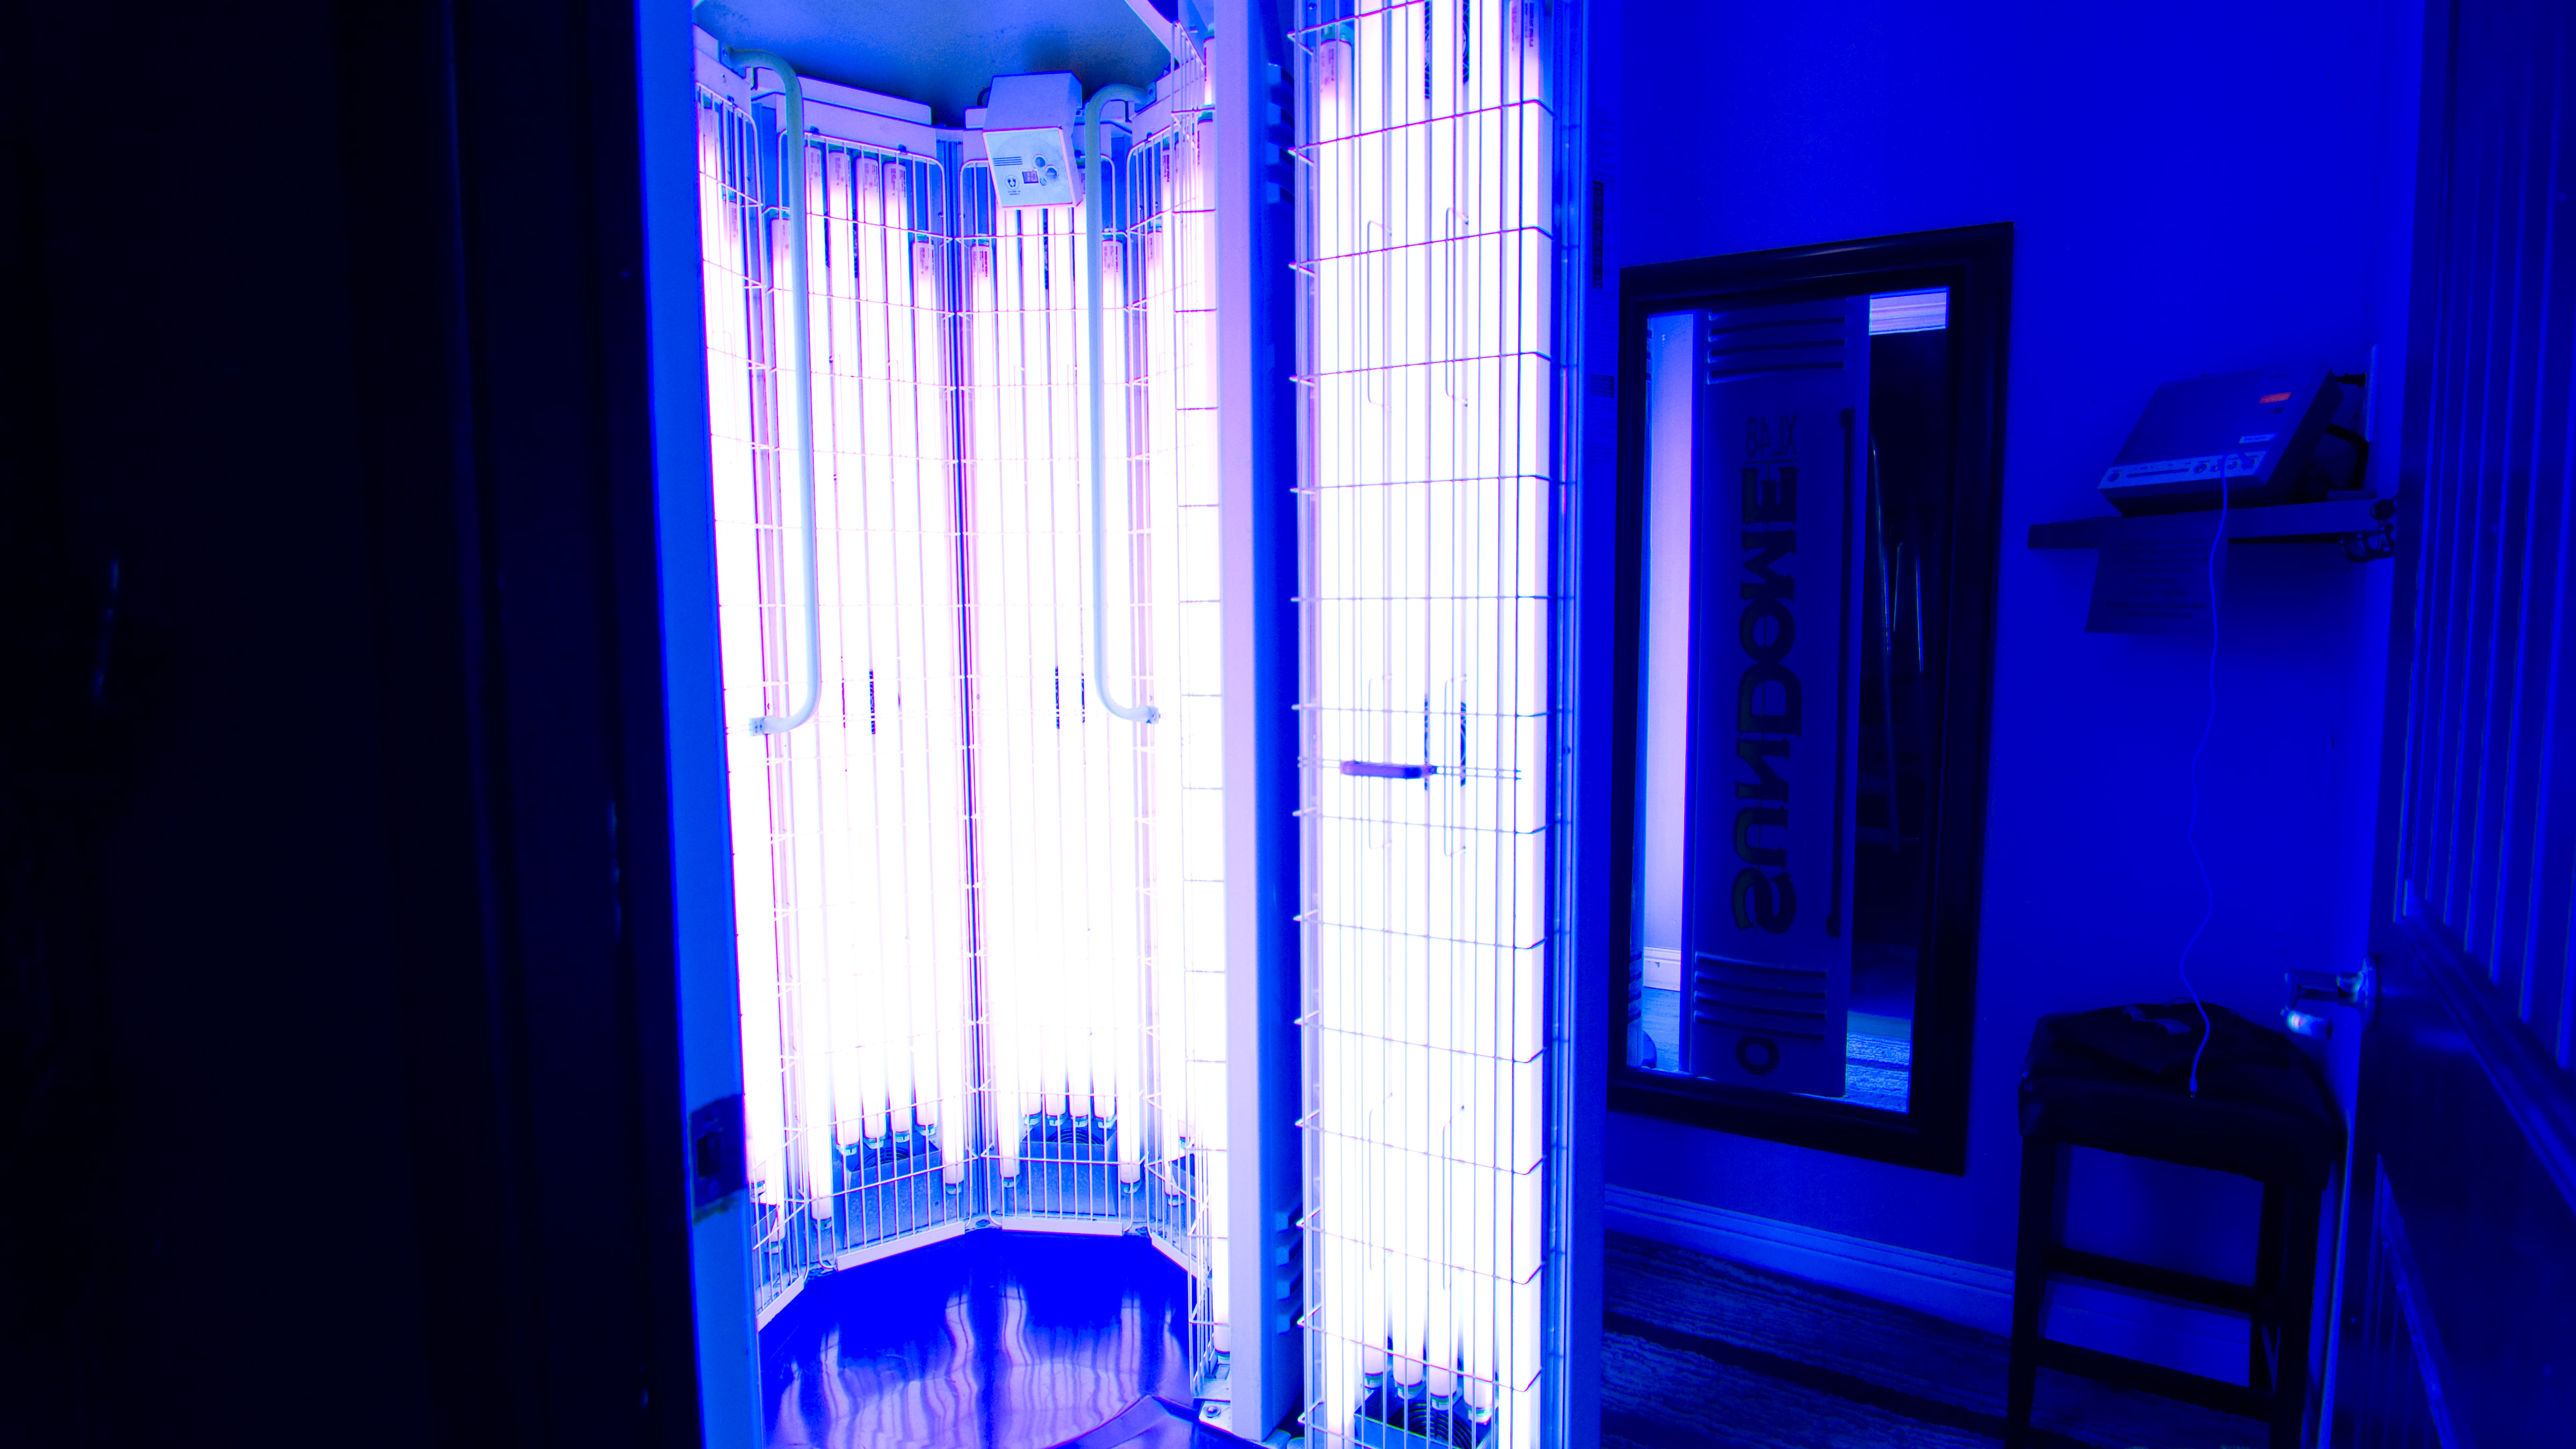 servicing sunscape bed equipment studios bulbs uv open prestige tanning level pricing